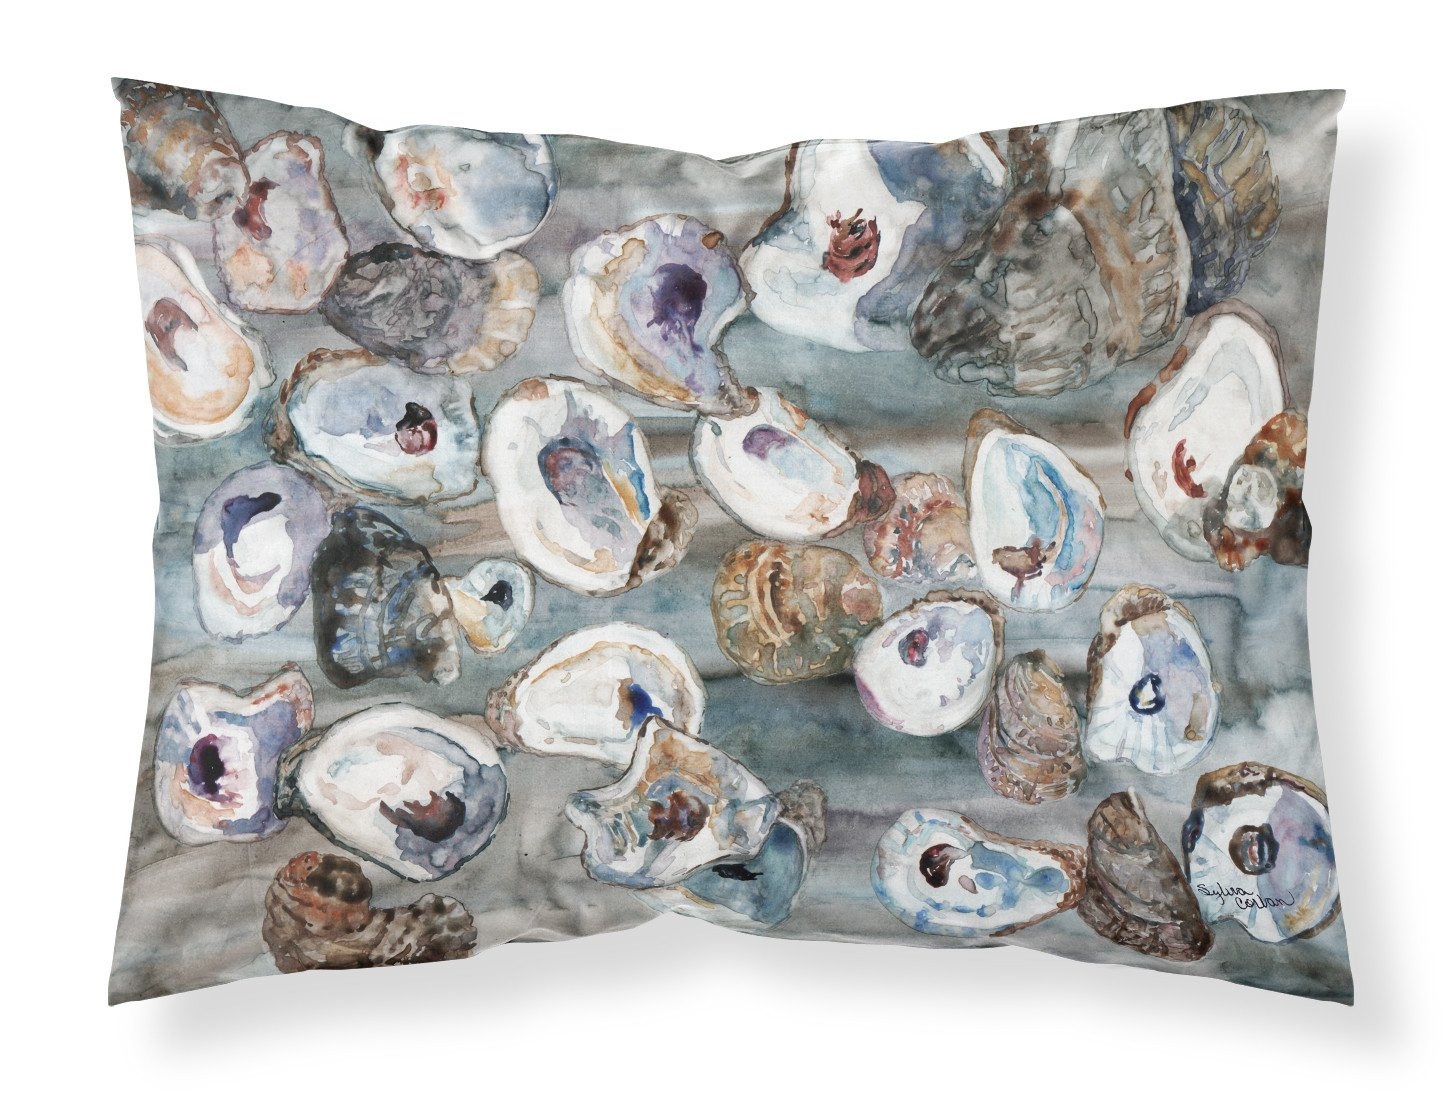 Buy this Bunch of Oysters Fabric Standard Pillowcase 8957PILLOWCASE